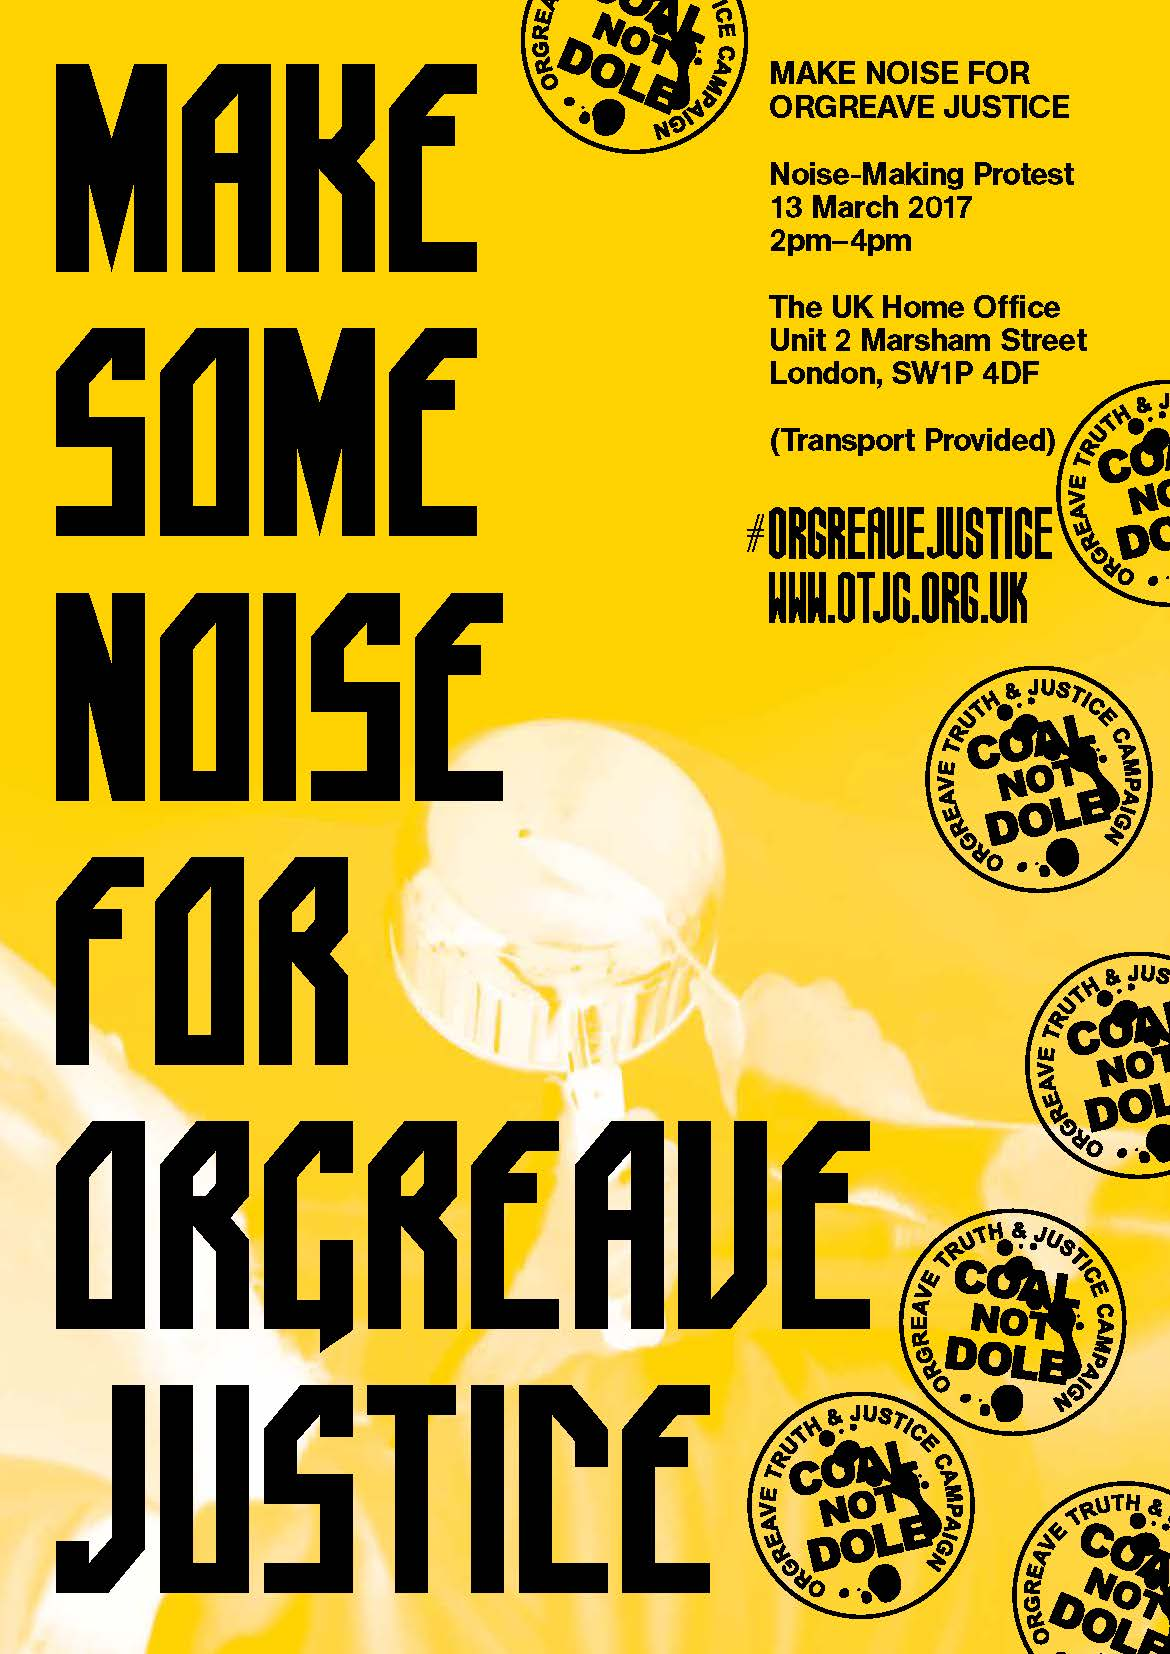 131_OTJC_Noise_Protest_A3_Poster_v2_Page_2